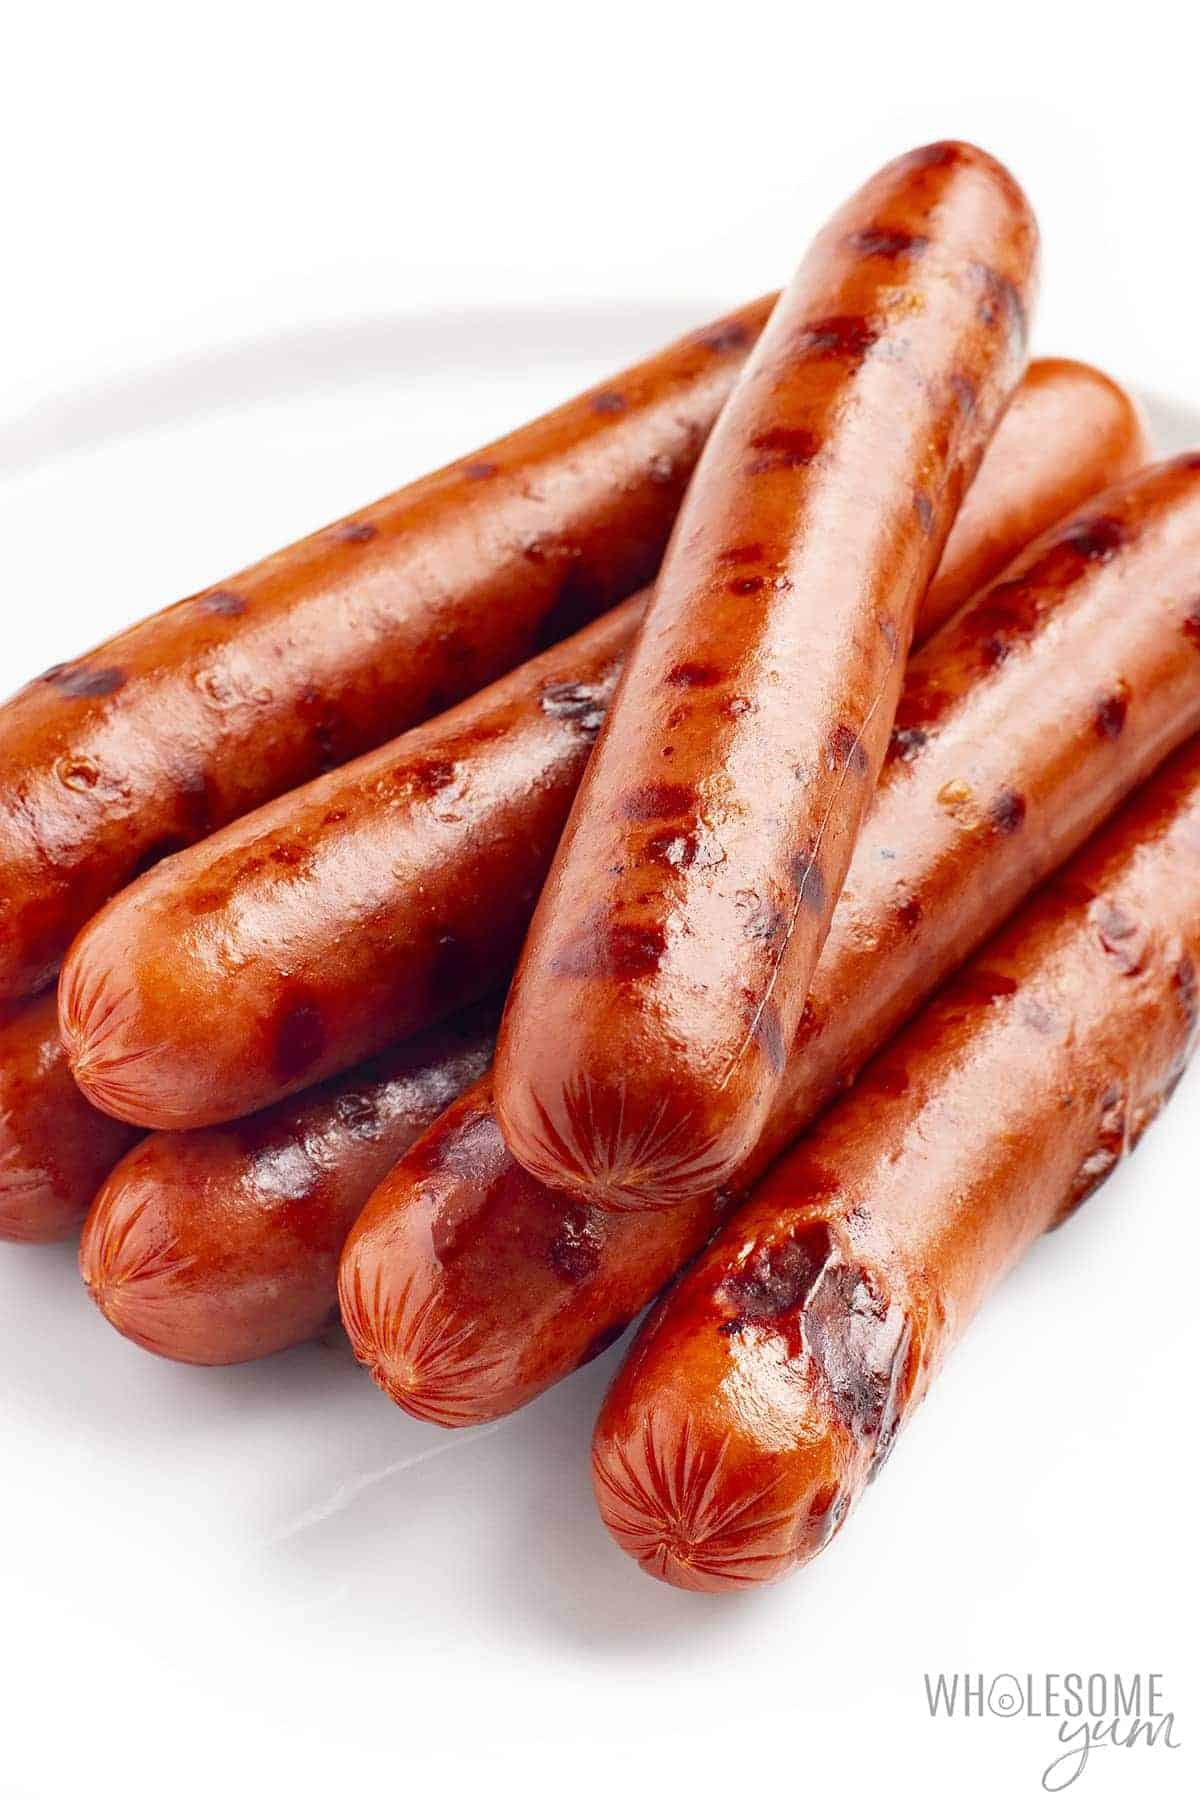 How many carbs in hot dogs? These cooked, plain hot dogs are low in carbs.